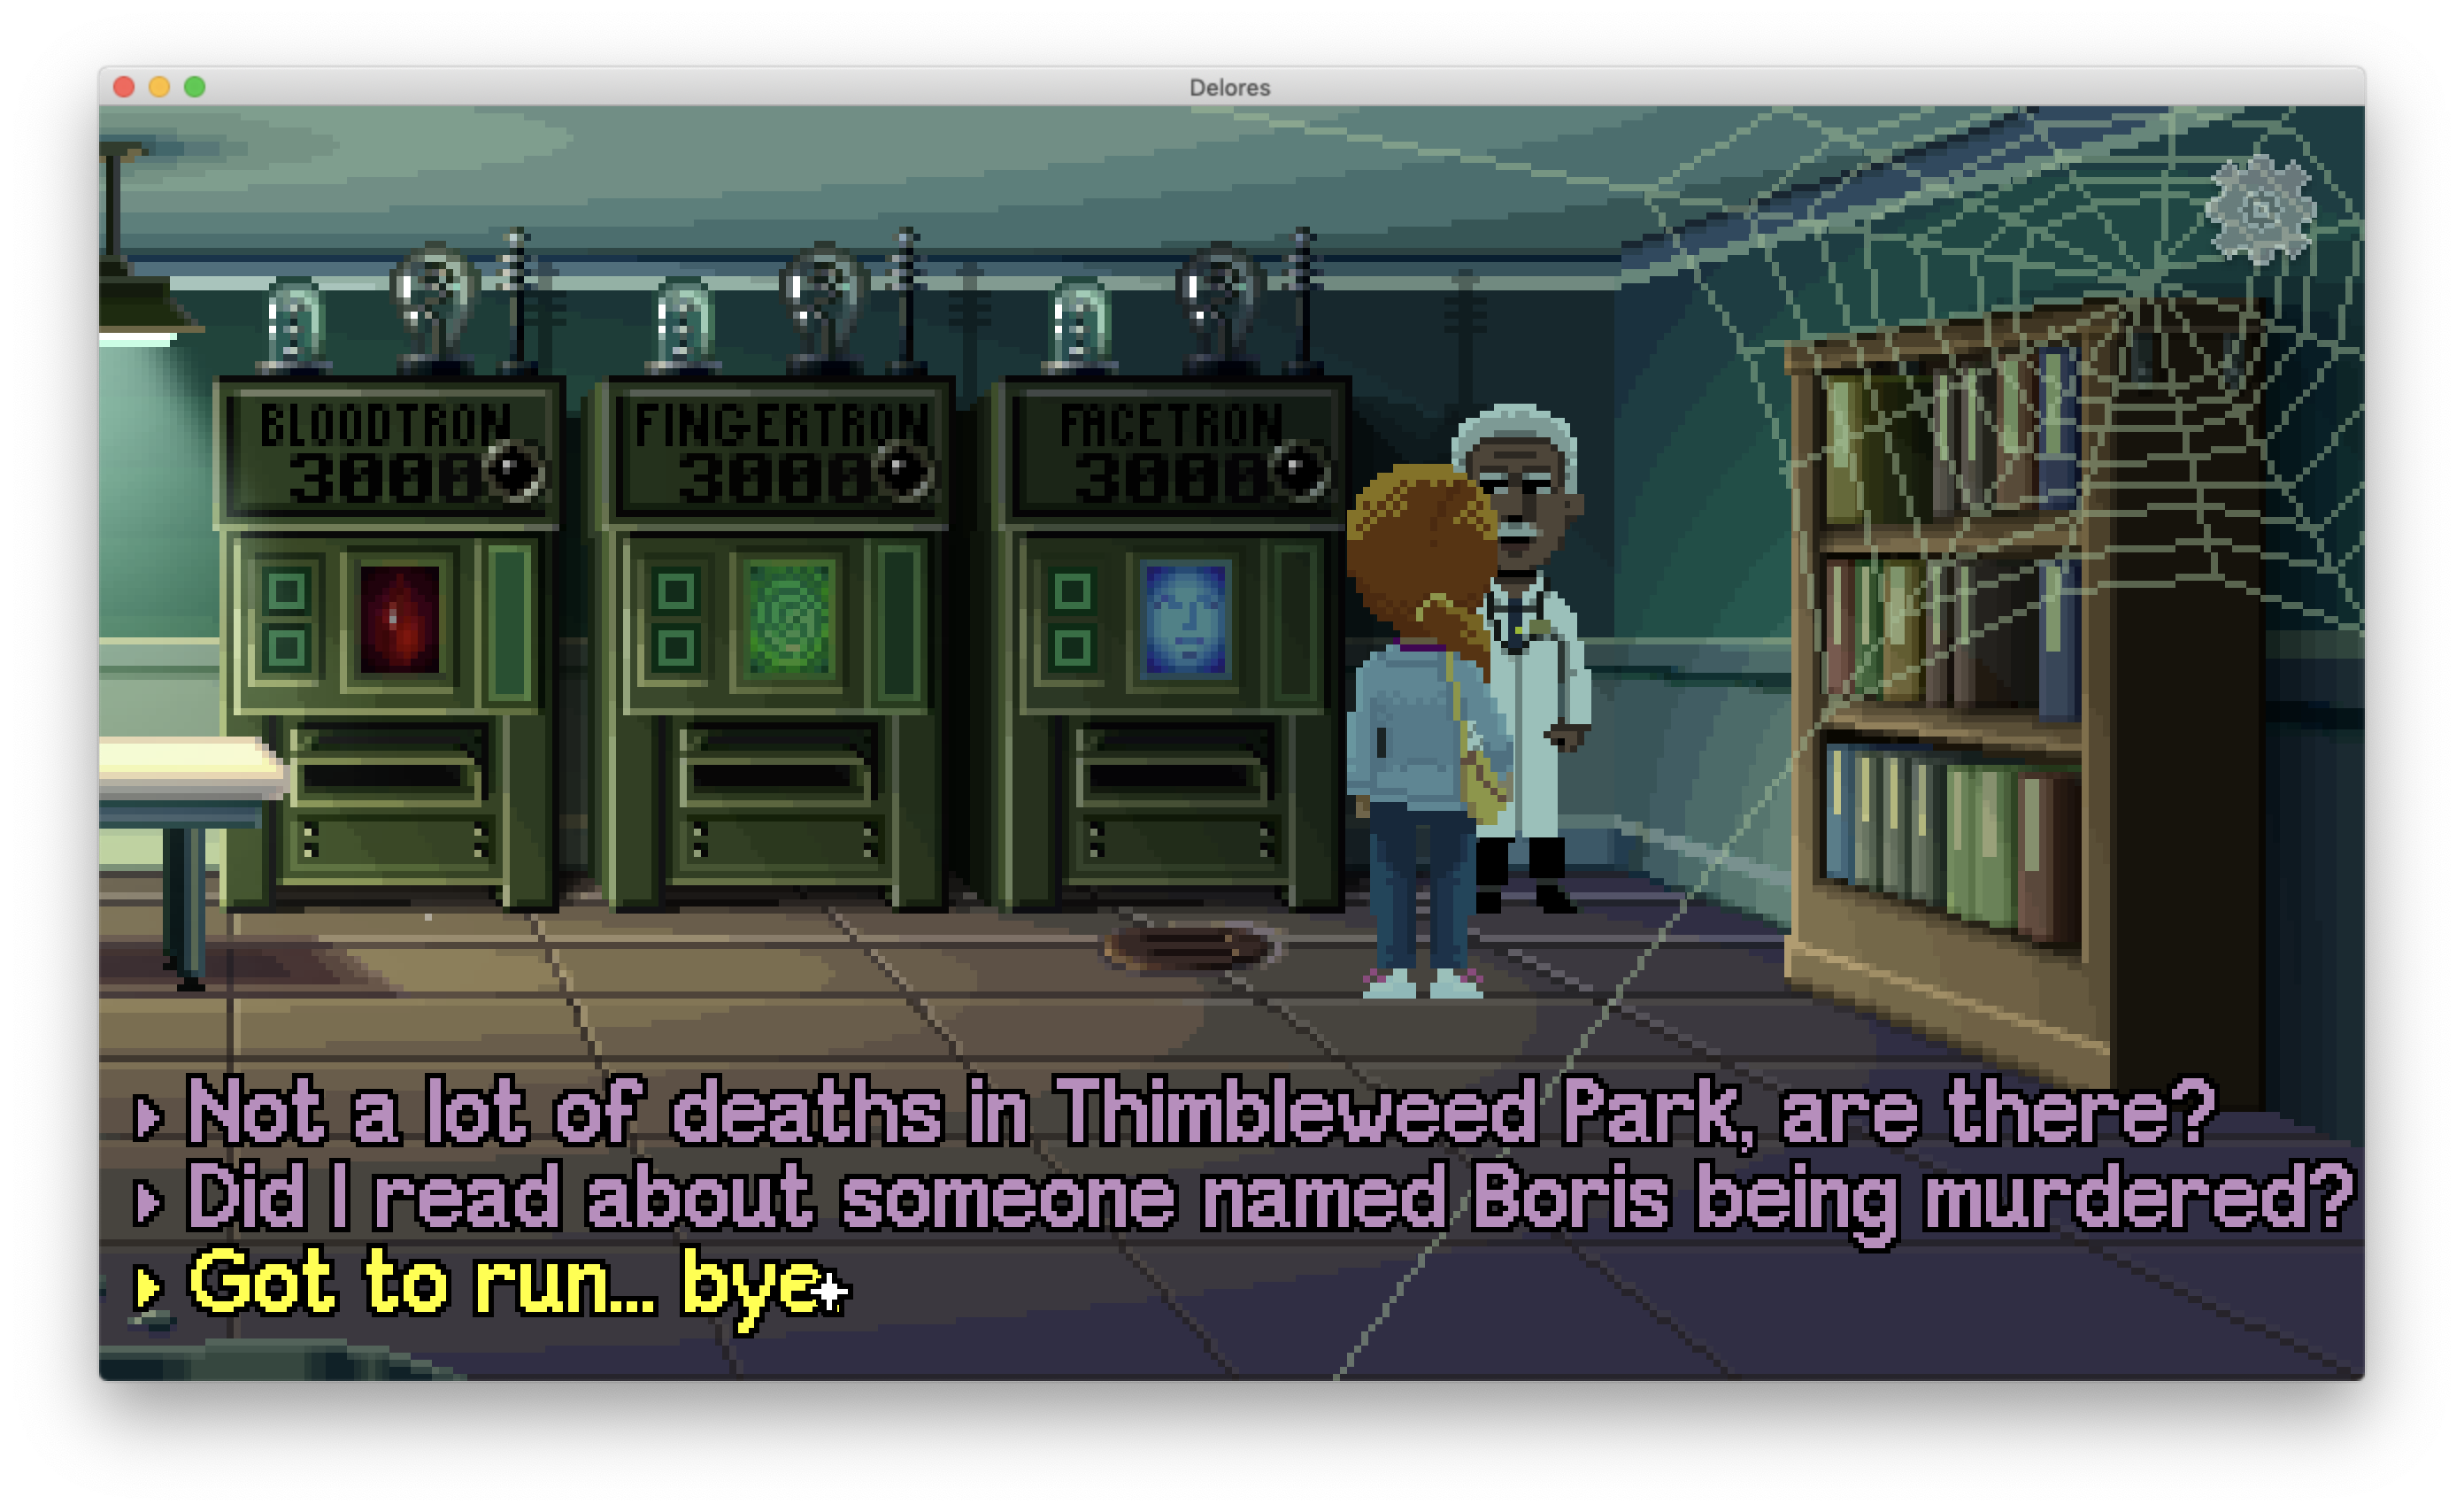 Delores: A Thimbleweed Park Mini-Adventure (Mac): COMPLETED!